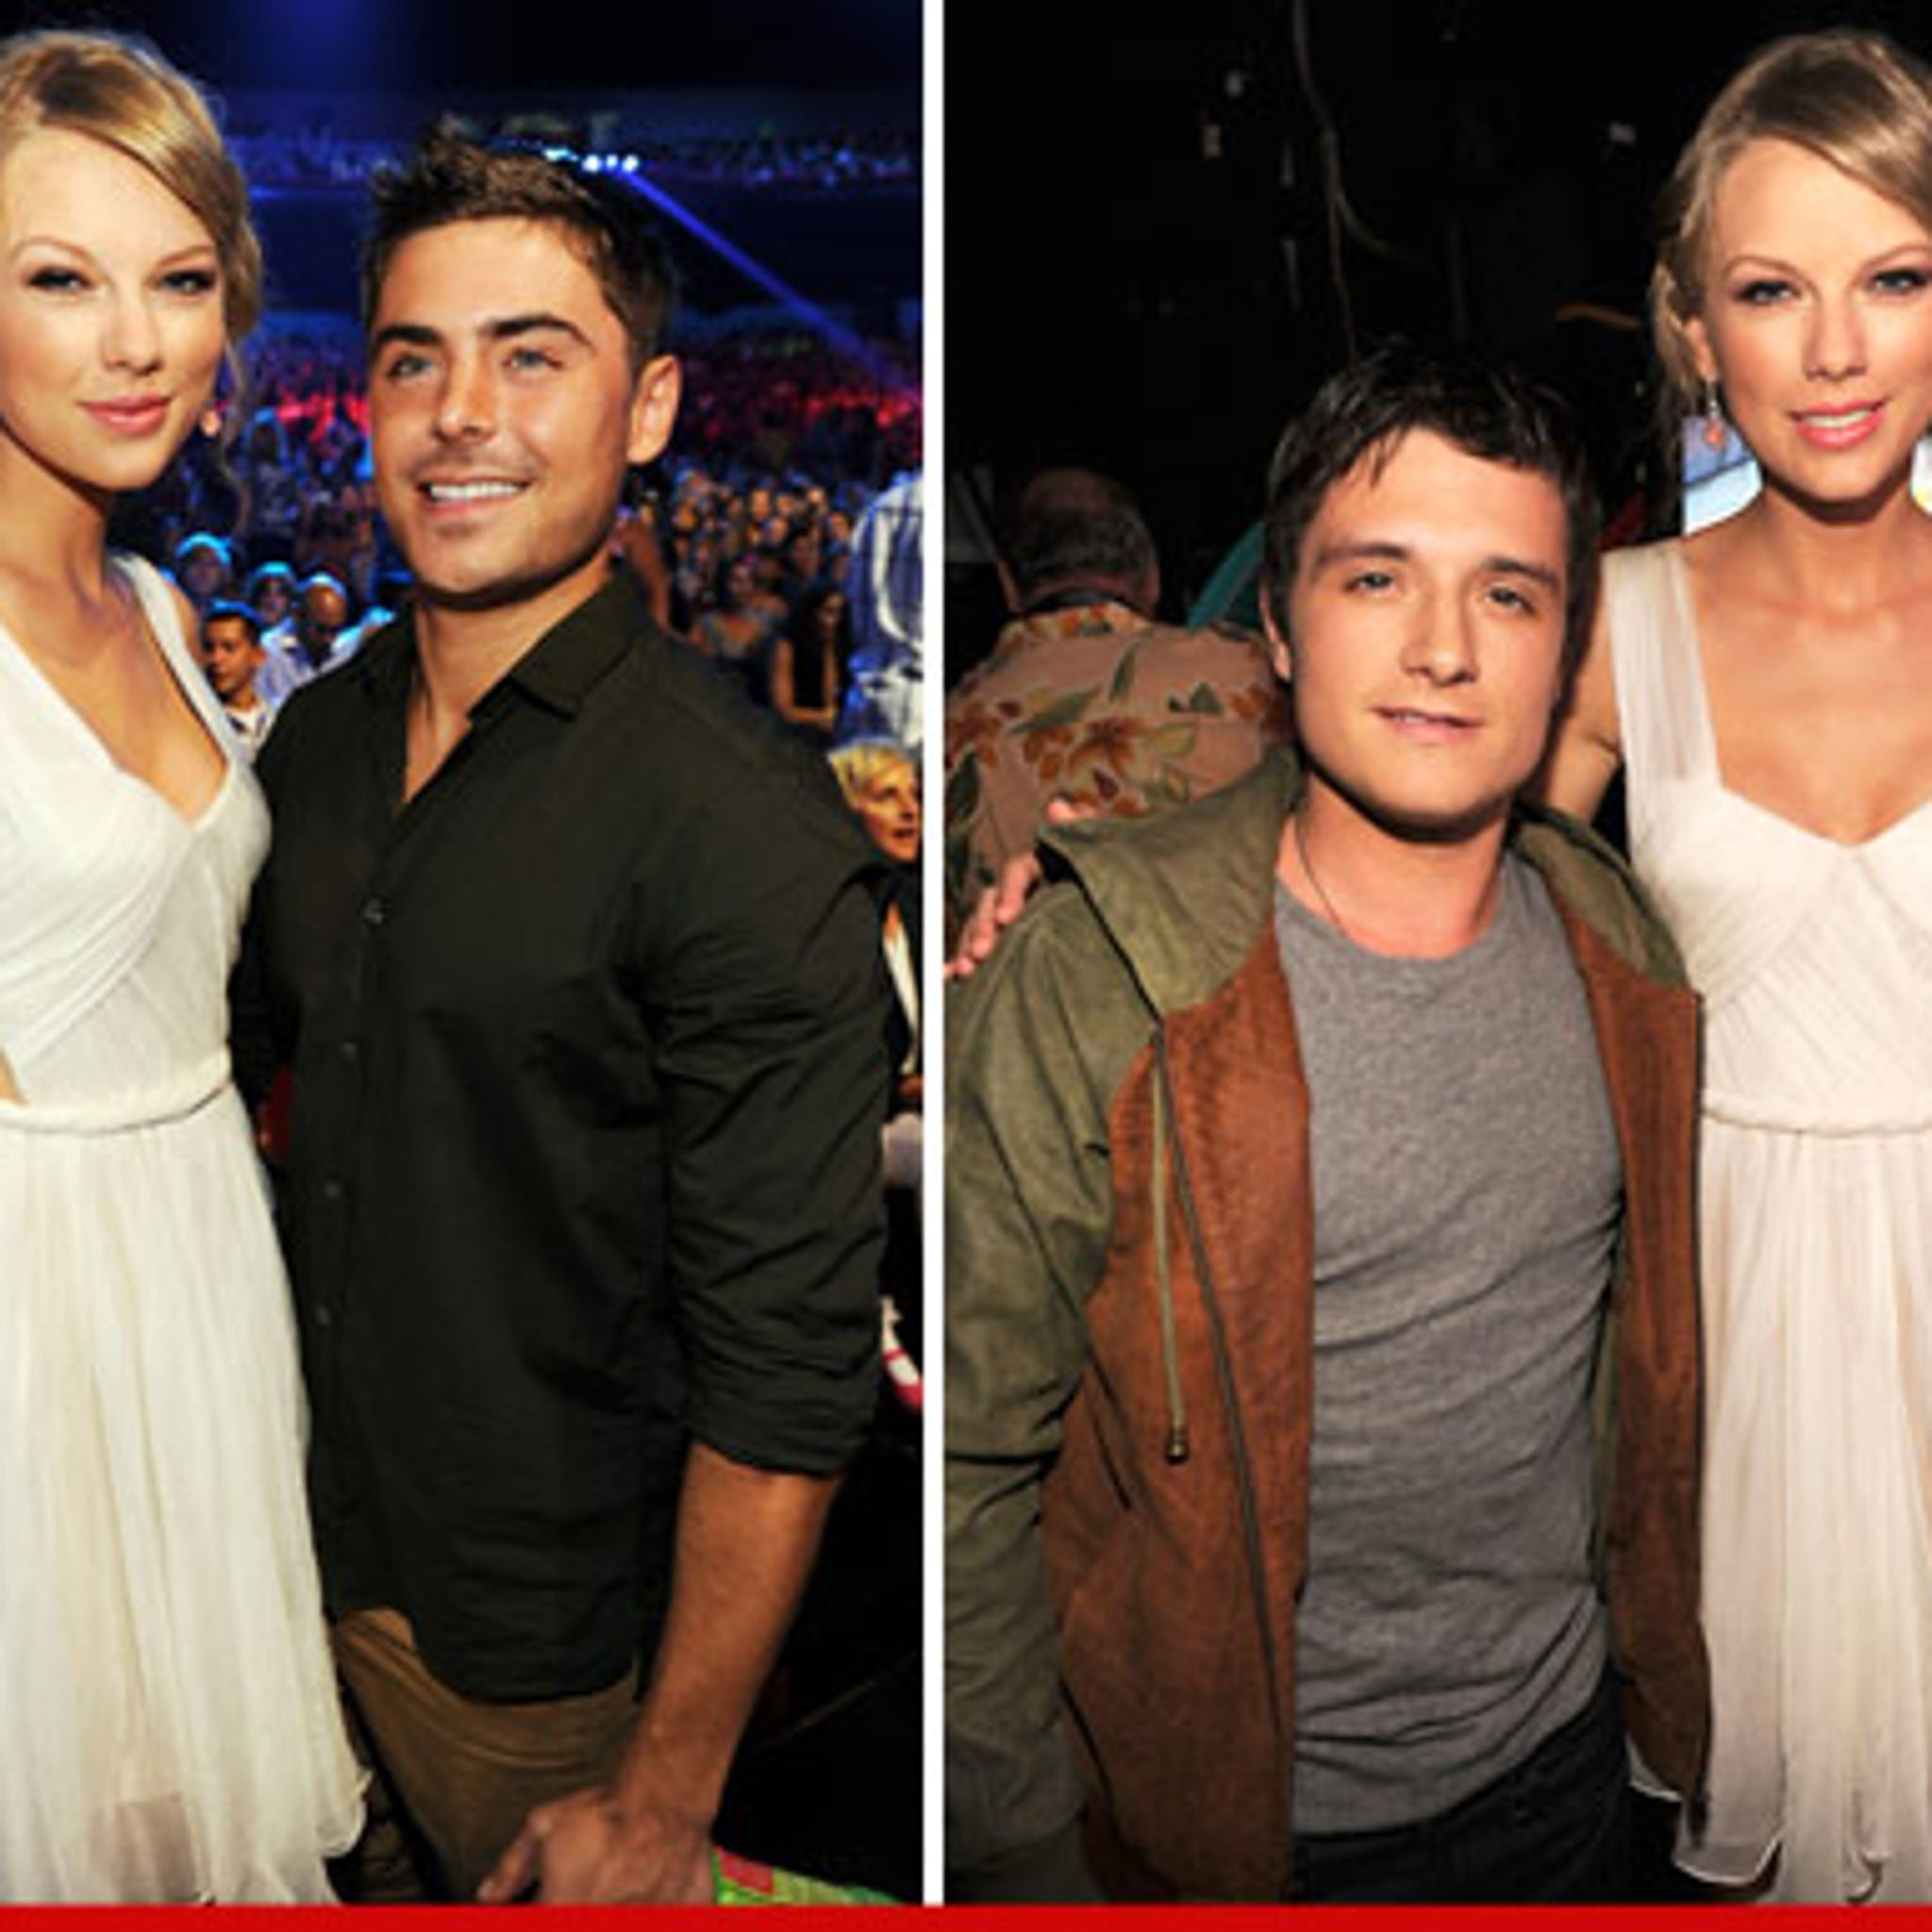 Taylor Swift Cuts Zac Efron Josh Hutcherson Down To Size